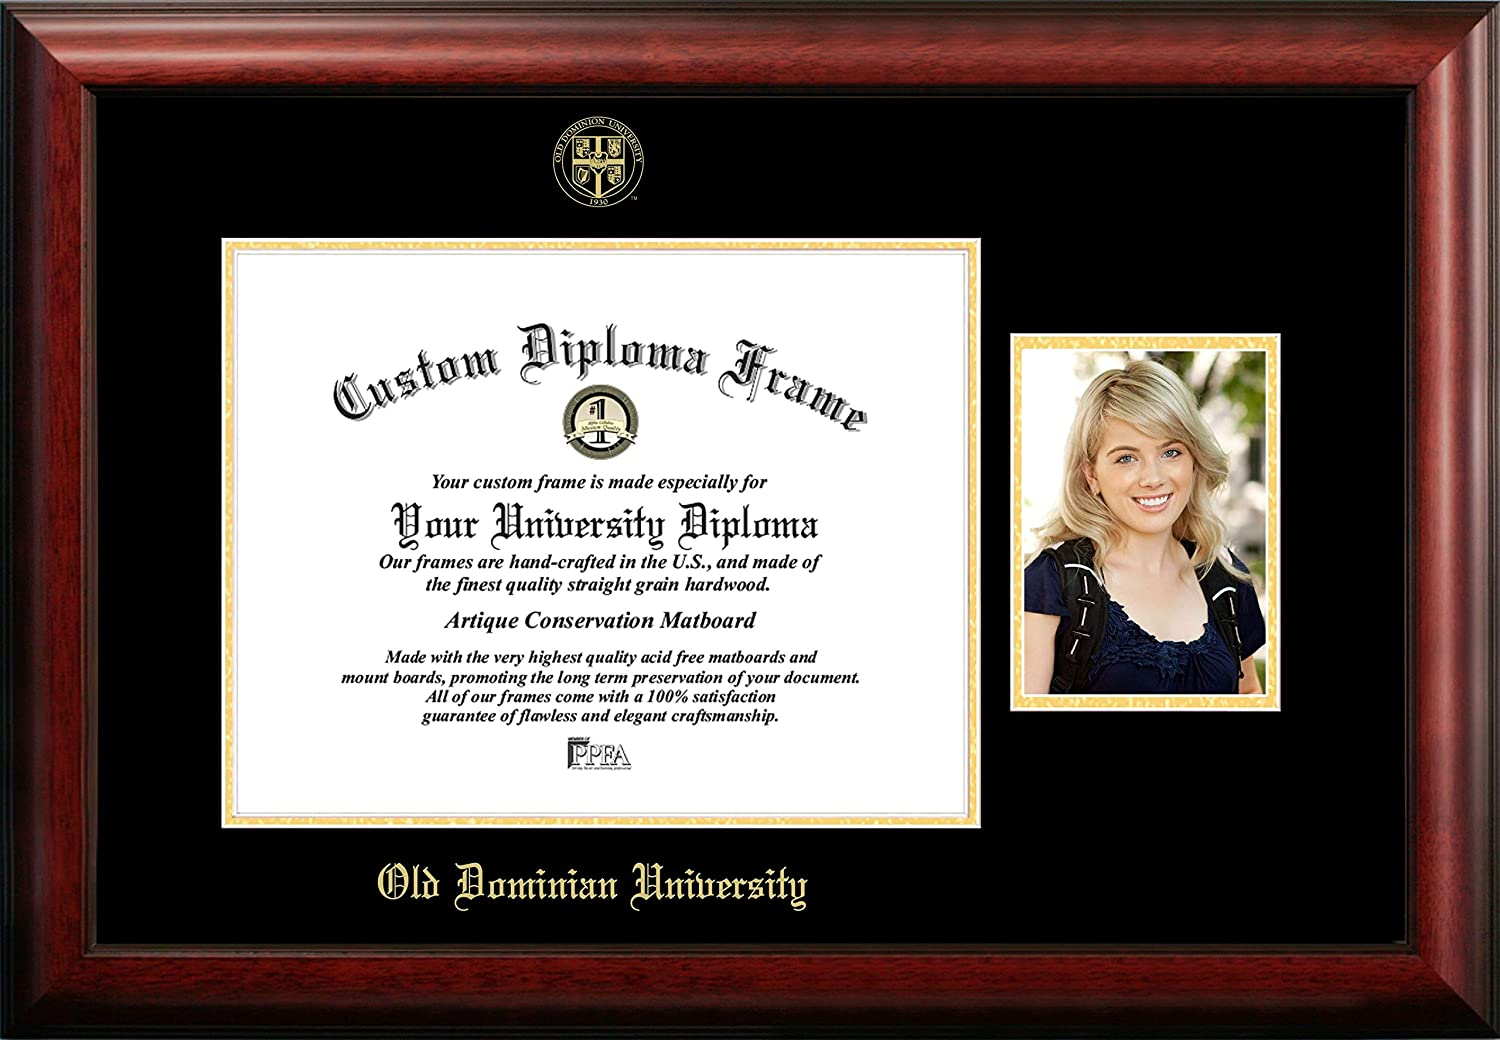 NCAA Old Dominion Monarchs Unisex Old Dominion 14 x 11 Inches Gold Embossed Diploma Frame with 5 x 7 Inches Portrait Gold Embossed Diploma Frame with 5 x 7 Inches Portrait Brown One Size